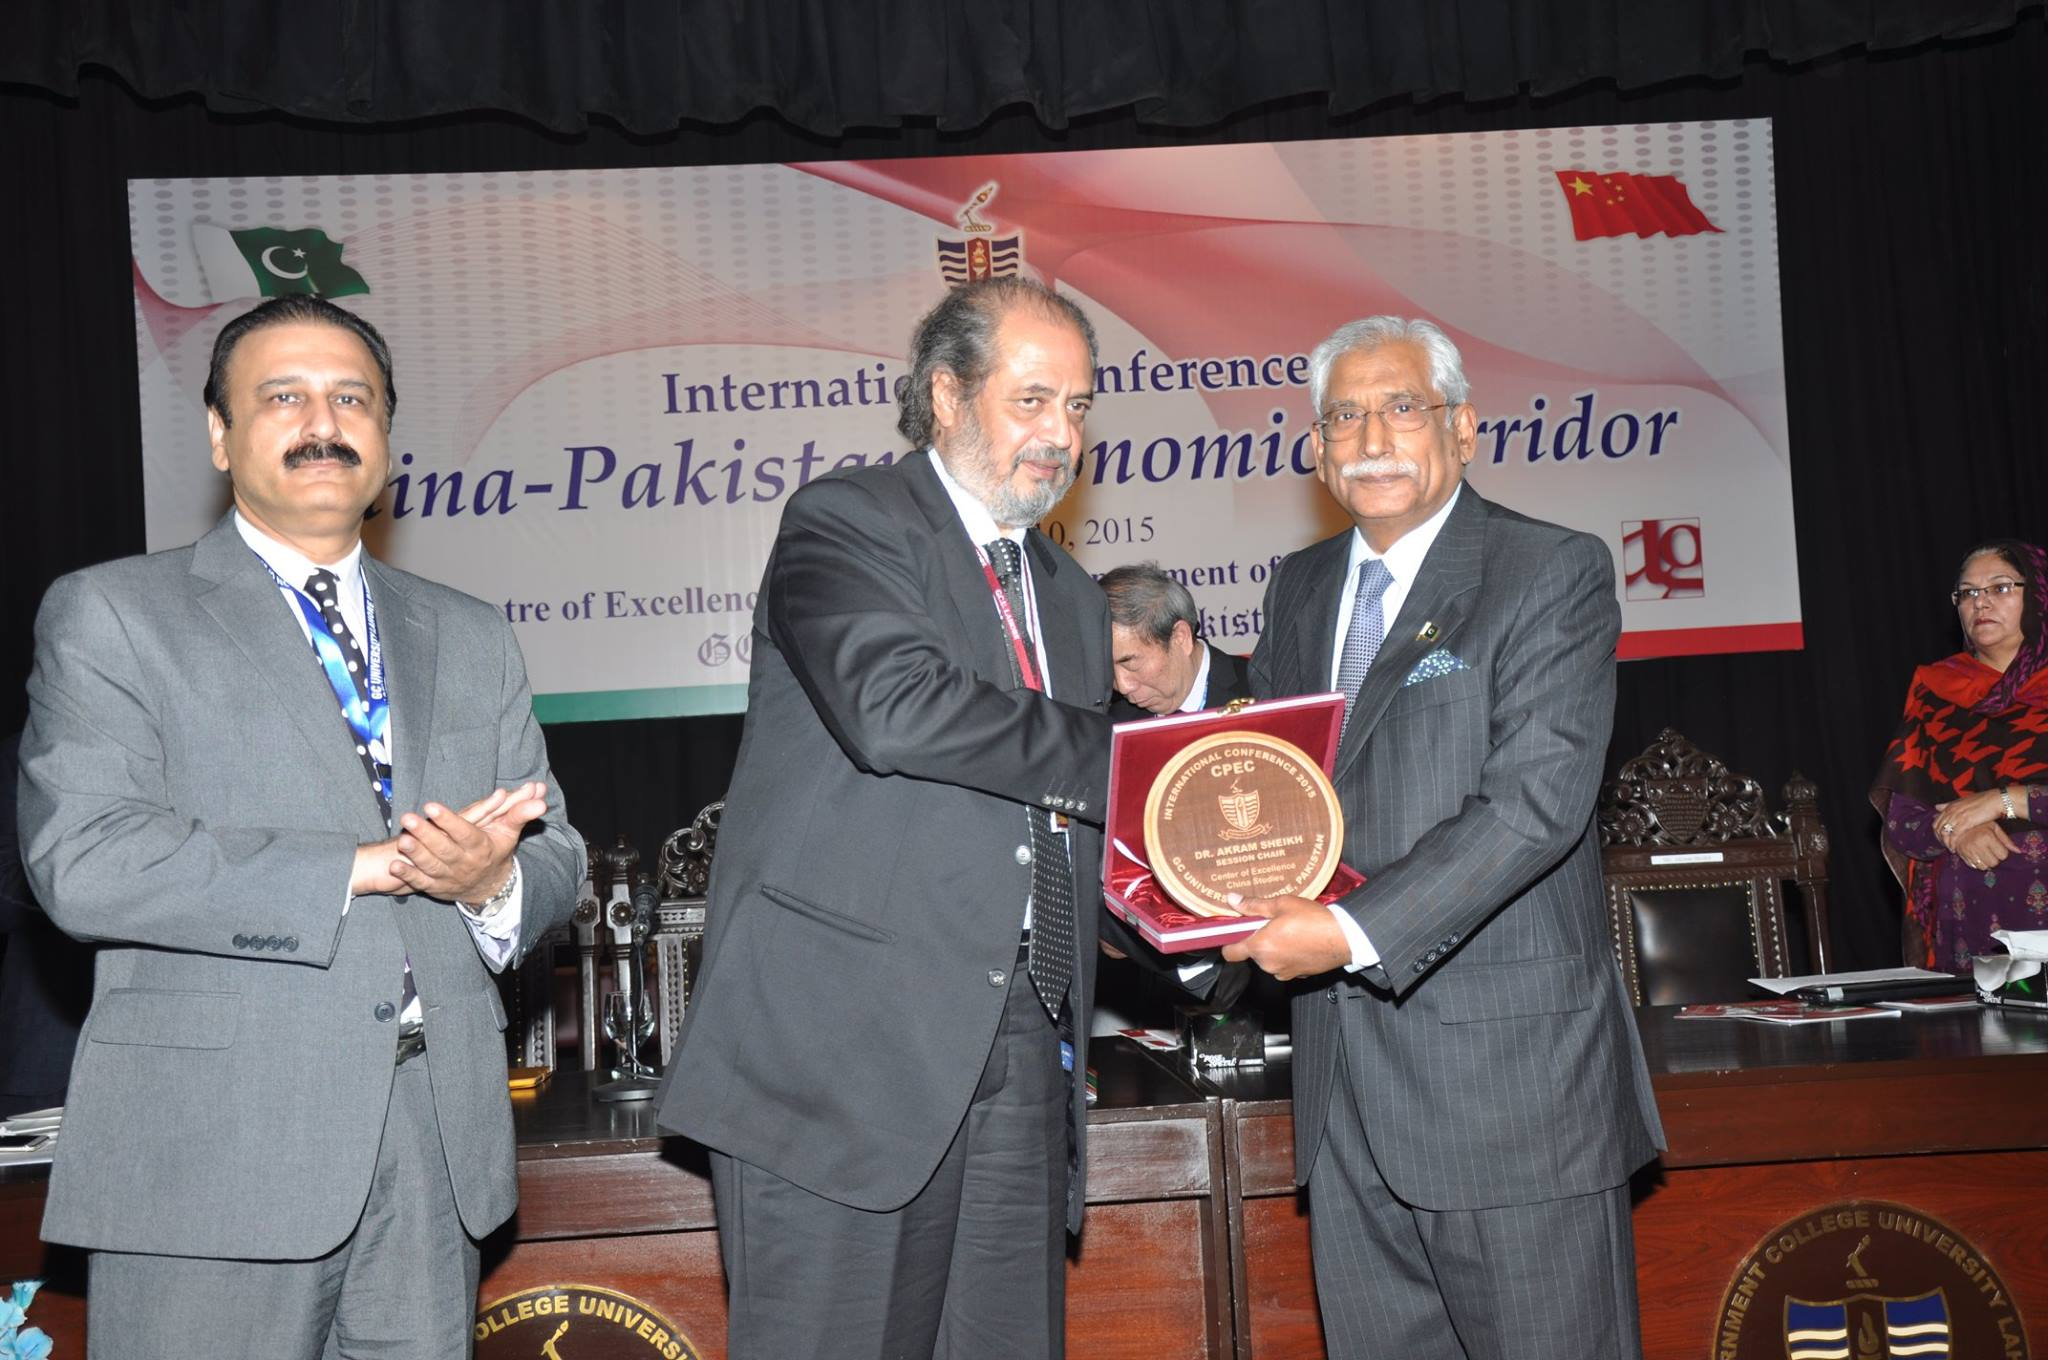 Vice Chancellor presenting Souvenir to the Keynote Speaker of the Conference